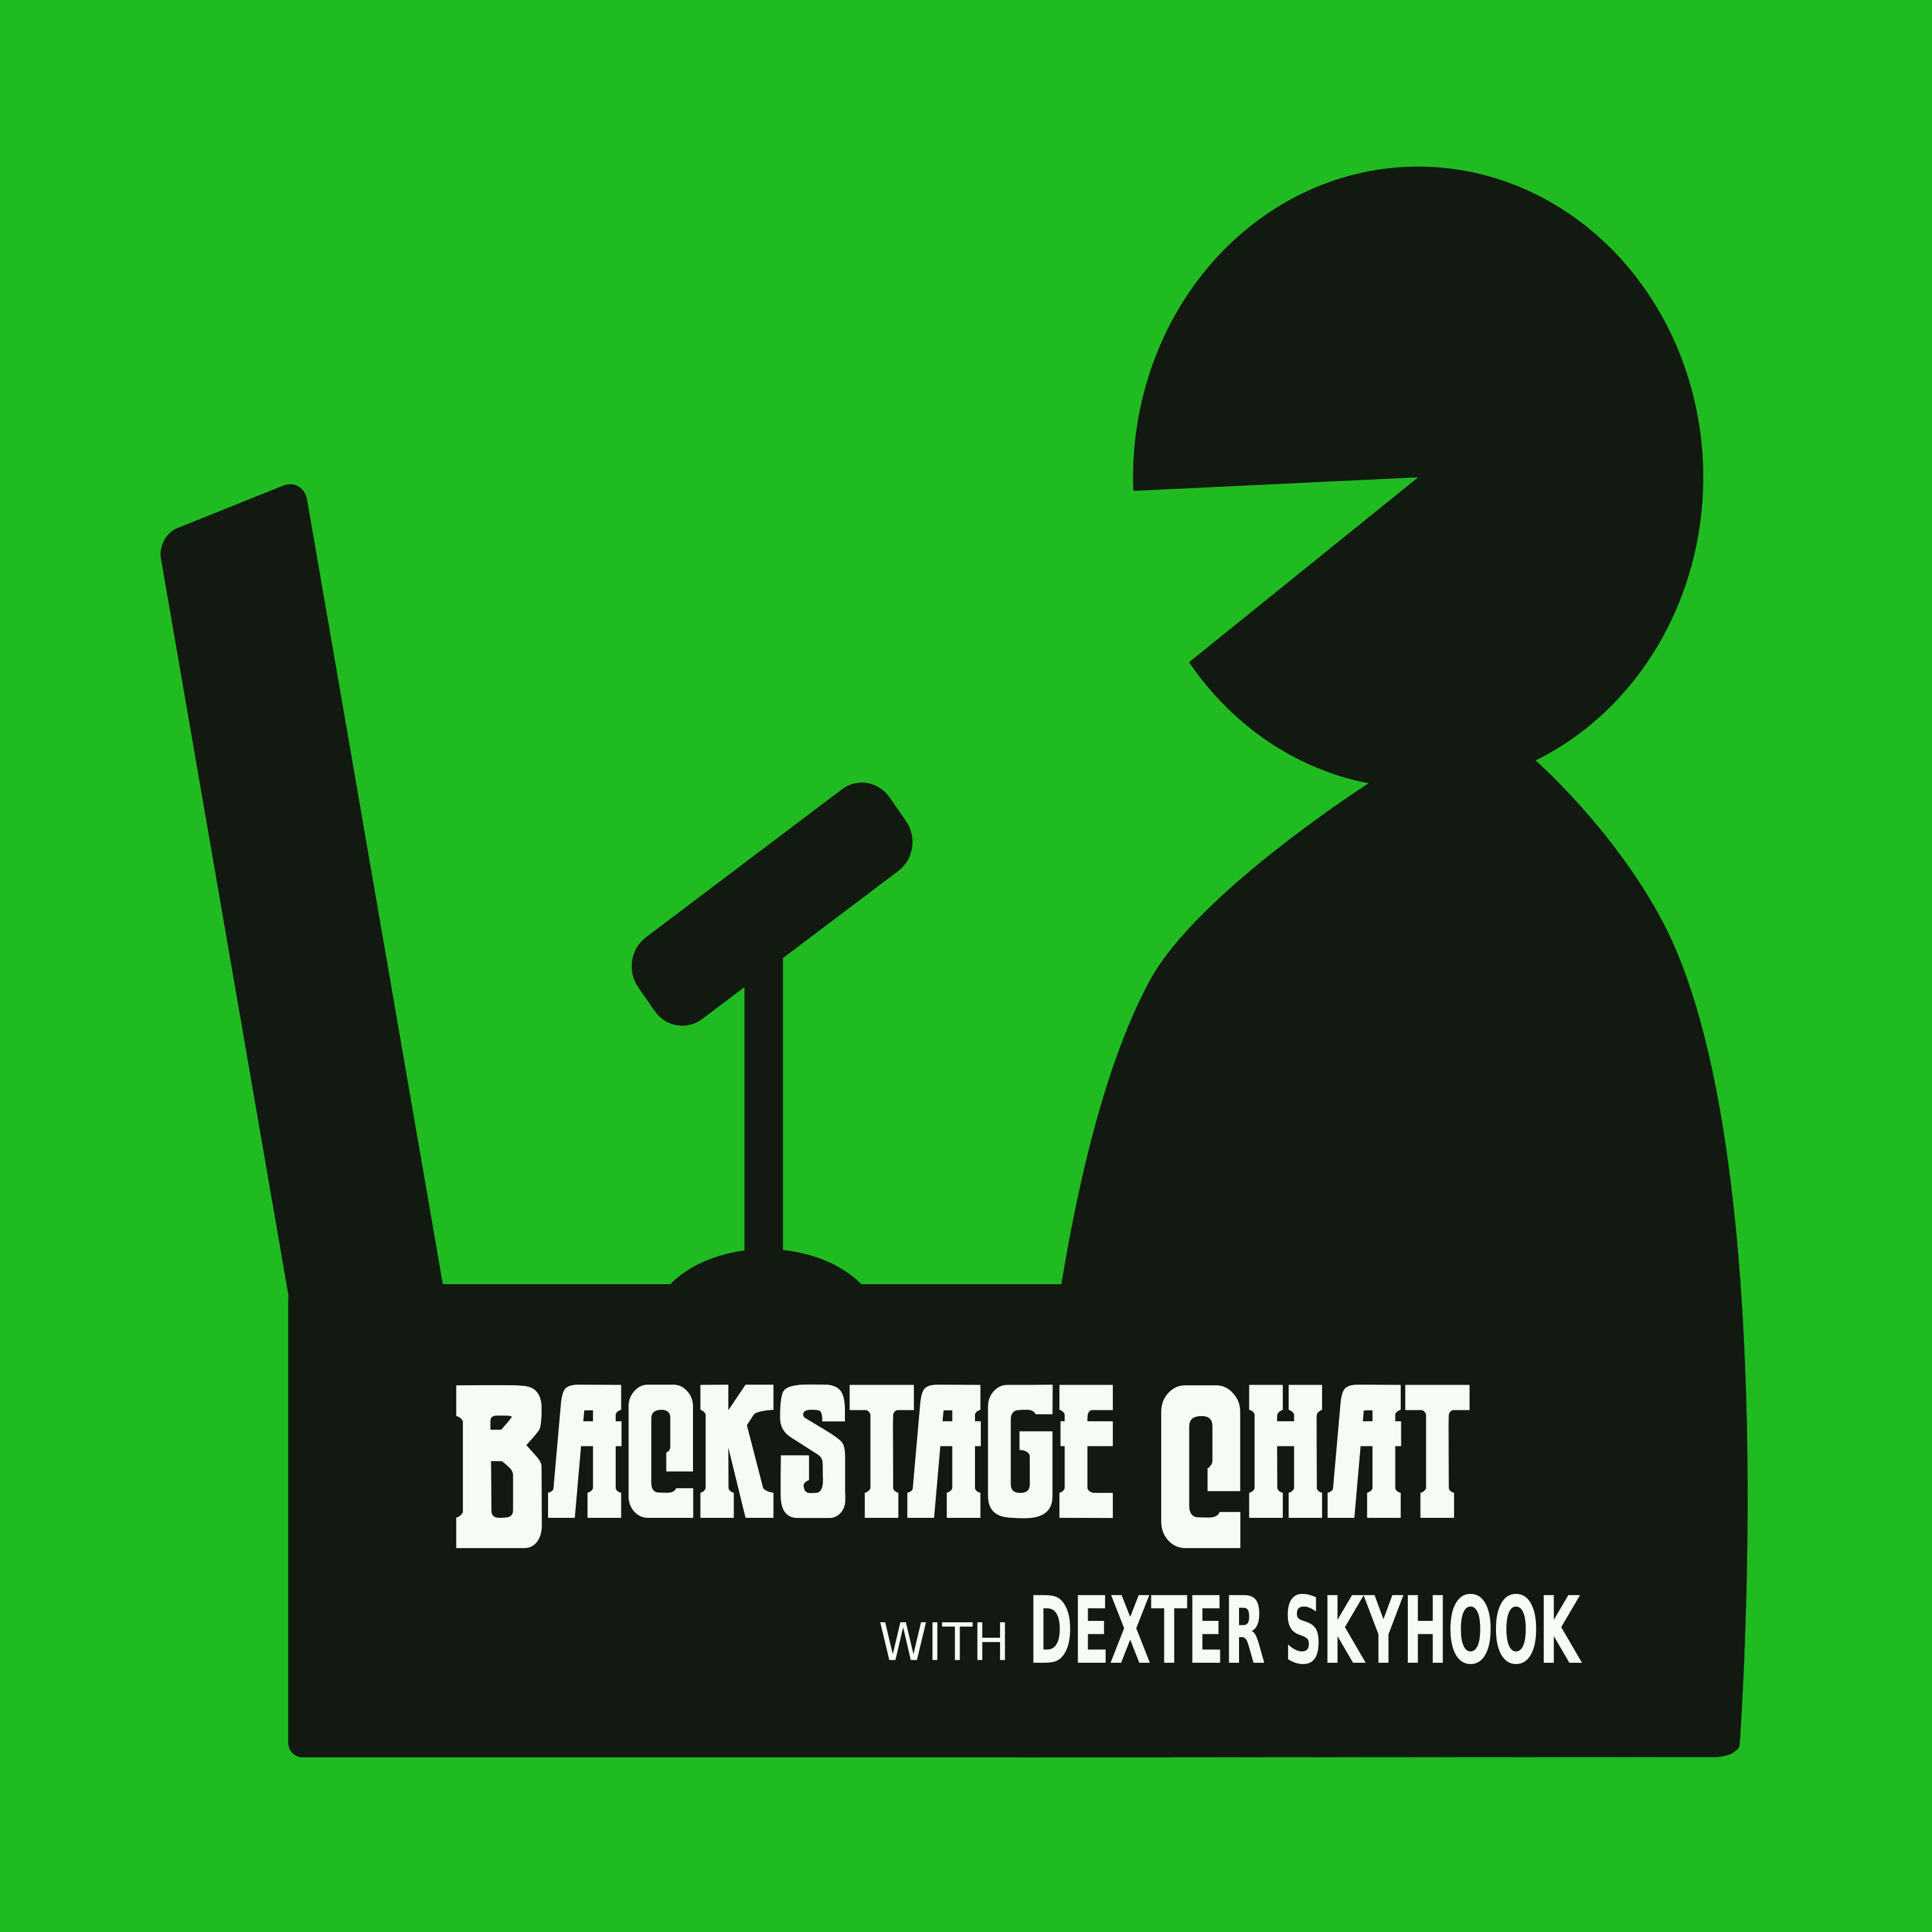 Backstage Chat with Dexter Skyhook